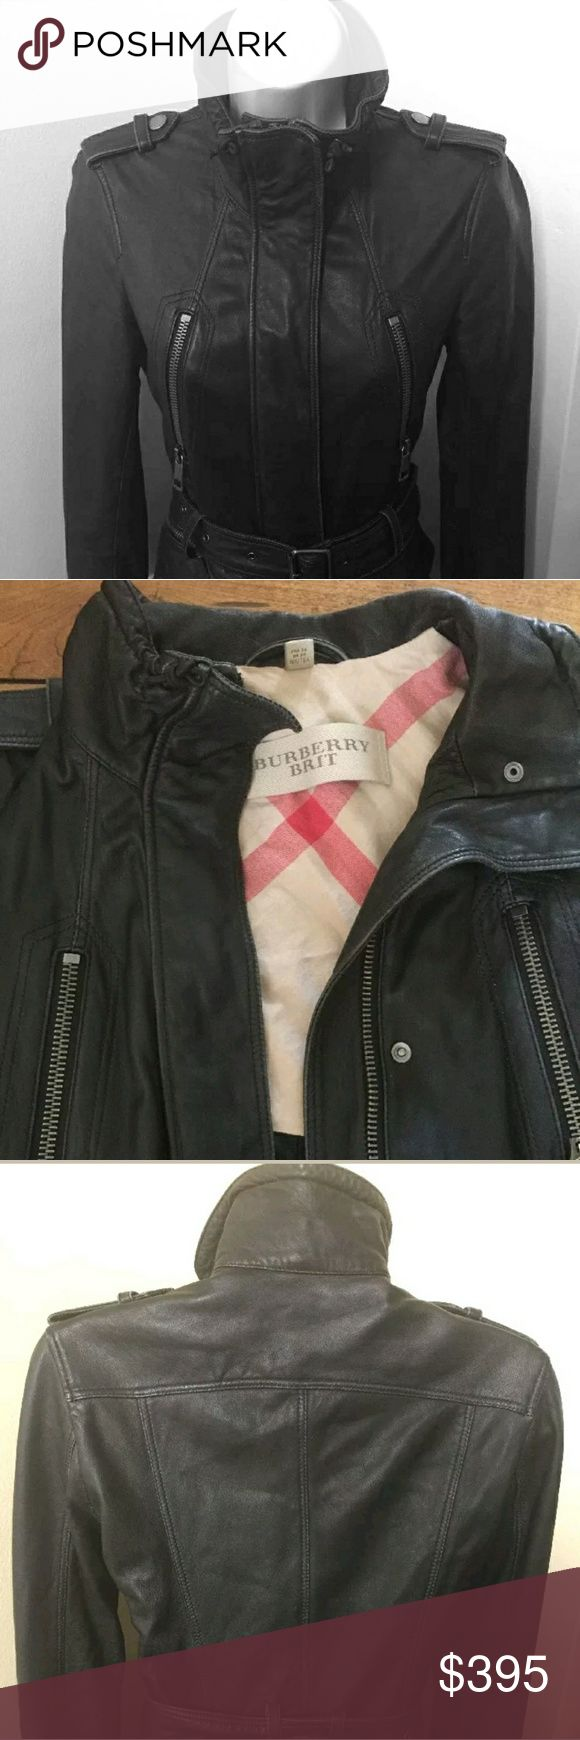 Burberry Brit Leather Motorcycle Jacket size 2 Very good condition. Please see pics. Ships via priority Leather is distressed.  Smoke and pet free  Silver tone hardware  Fully lined  Made in Italy  100% lambskin  Leather belt  Four front zip pockets  Zip up hidden by flap  Shoulder epaulets with snaps -on the left one the stitching is coming loose on the side closest to the front but it is intact  Pre owned in good condition  No stains of any kind  Size US 2 Burberry Jackets & Coats